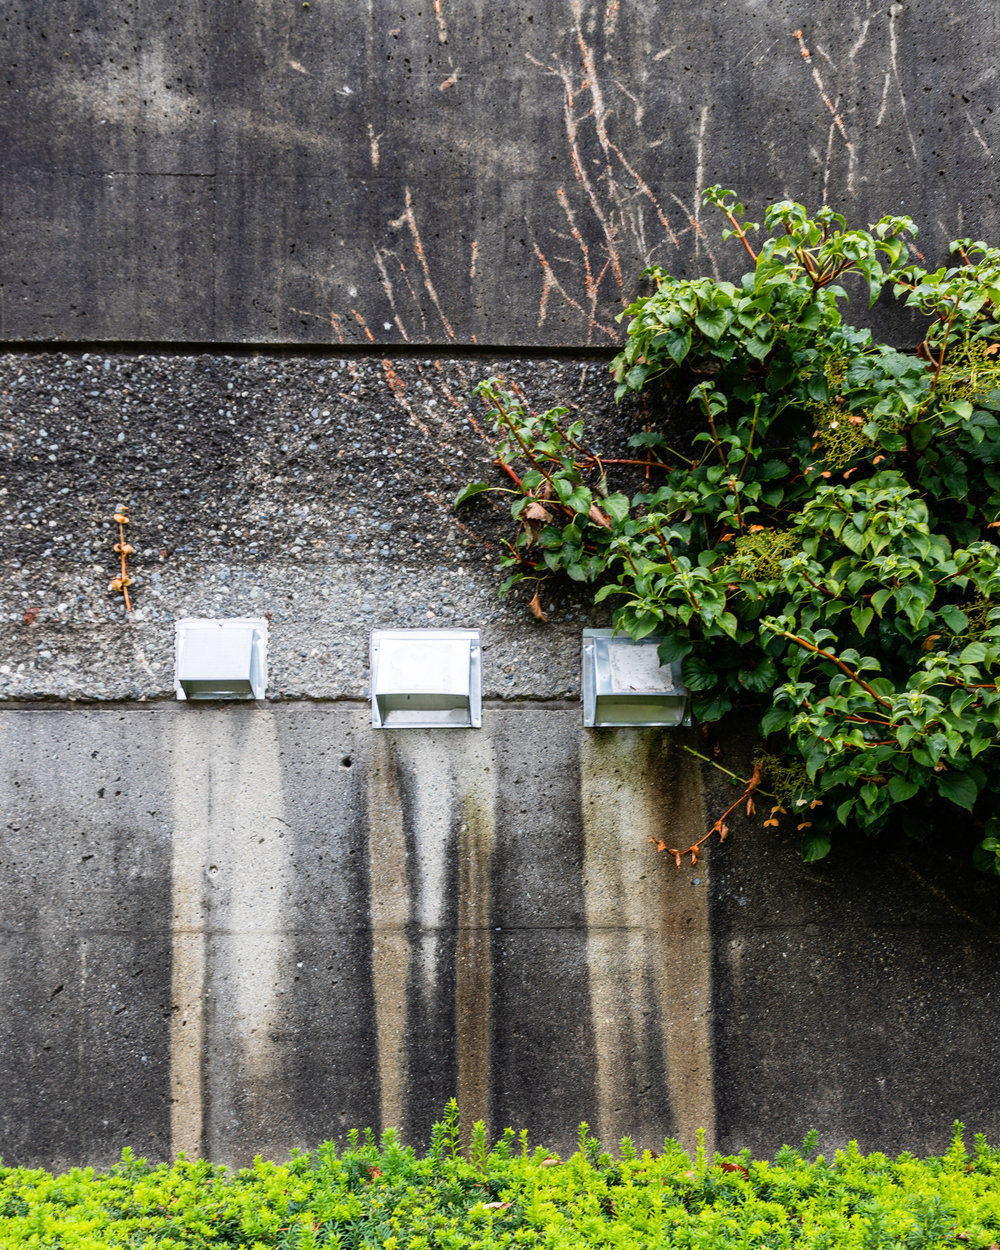 The wall was very monochrome and textured while the greenery very much neither.